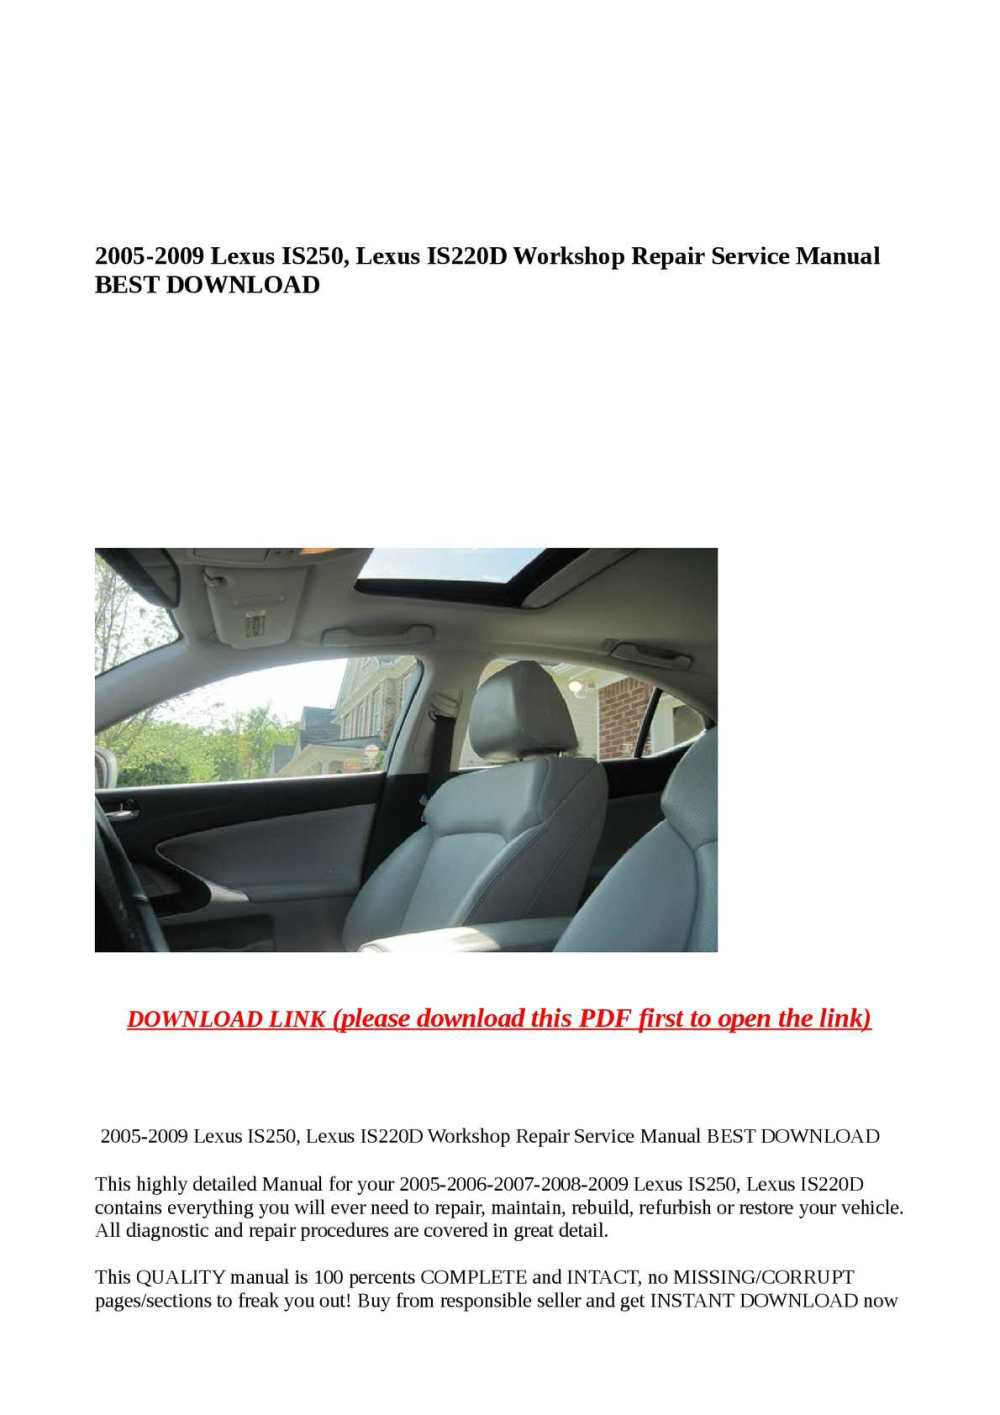 medium resolution of calam o 2005 2009 lexus is250 lexus is220d workshop repair service manua